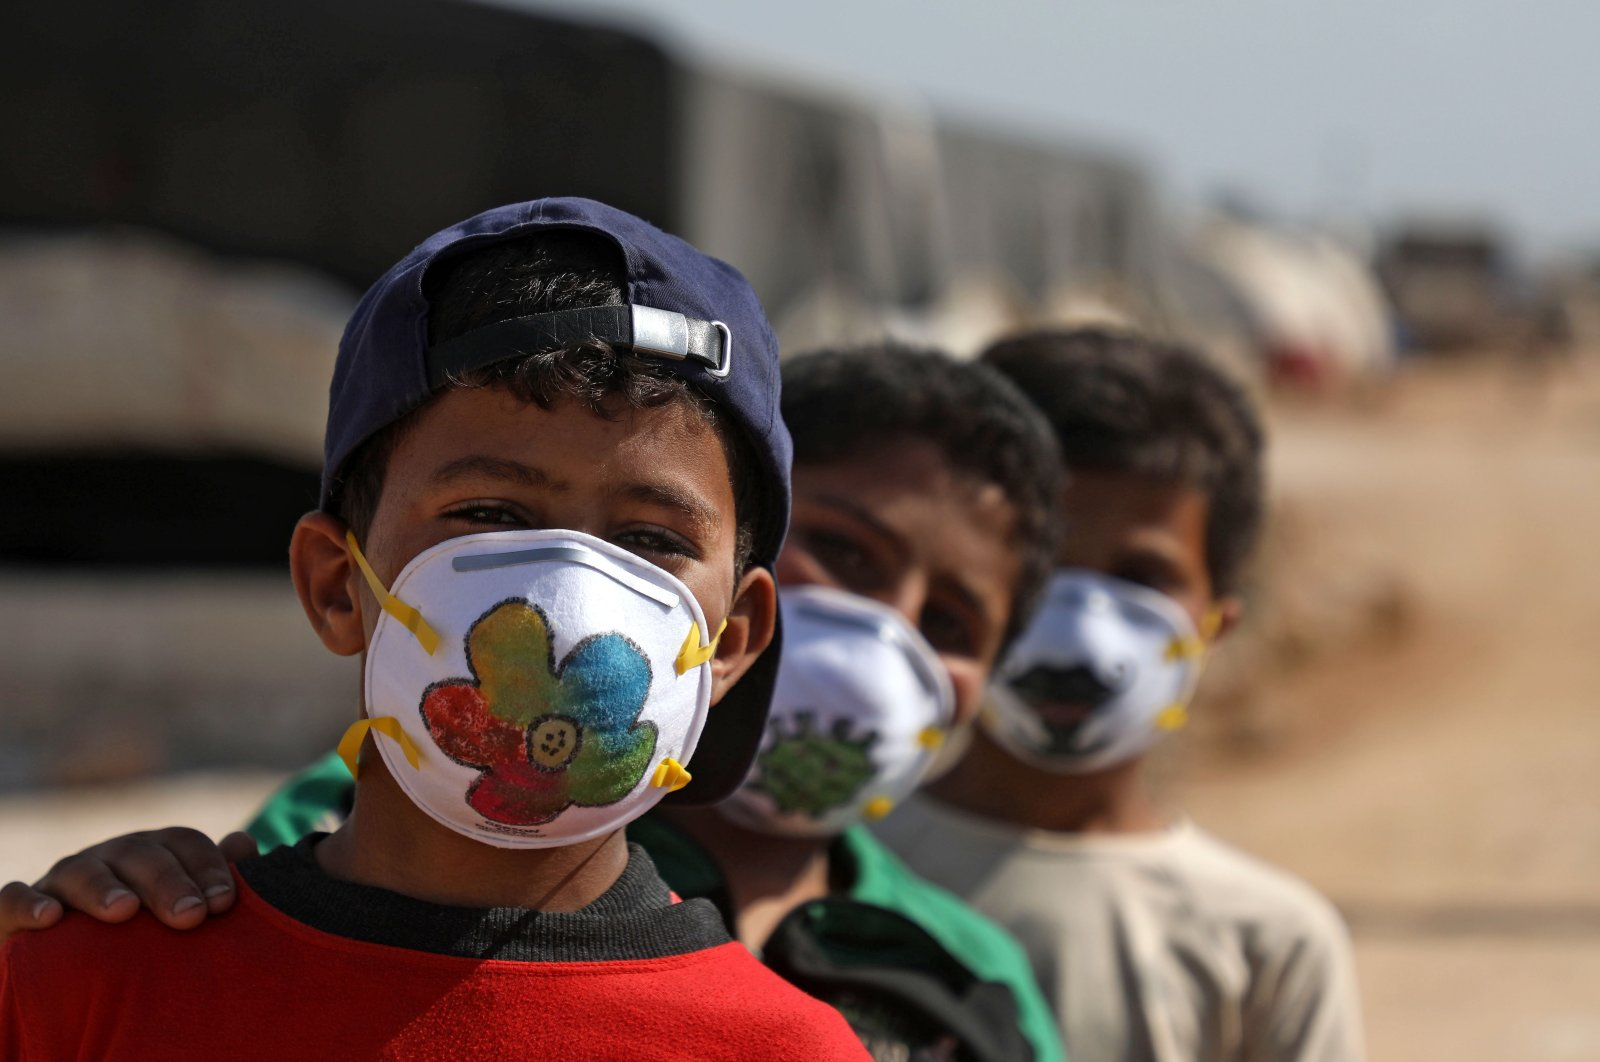 Displaced Syrian boys pose while wearing face masks decorated by artists during a COVID-19 awareness campaign at the Bardaqli camp in the town of Dana in Syria's northwestern Idlib province, on April 20, 2020. (AFP)